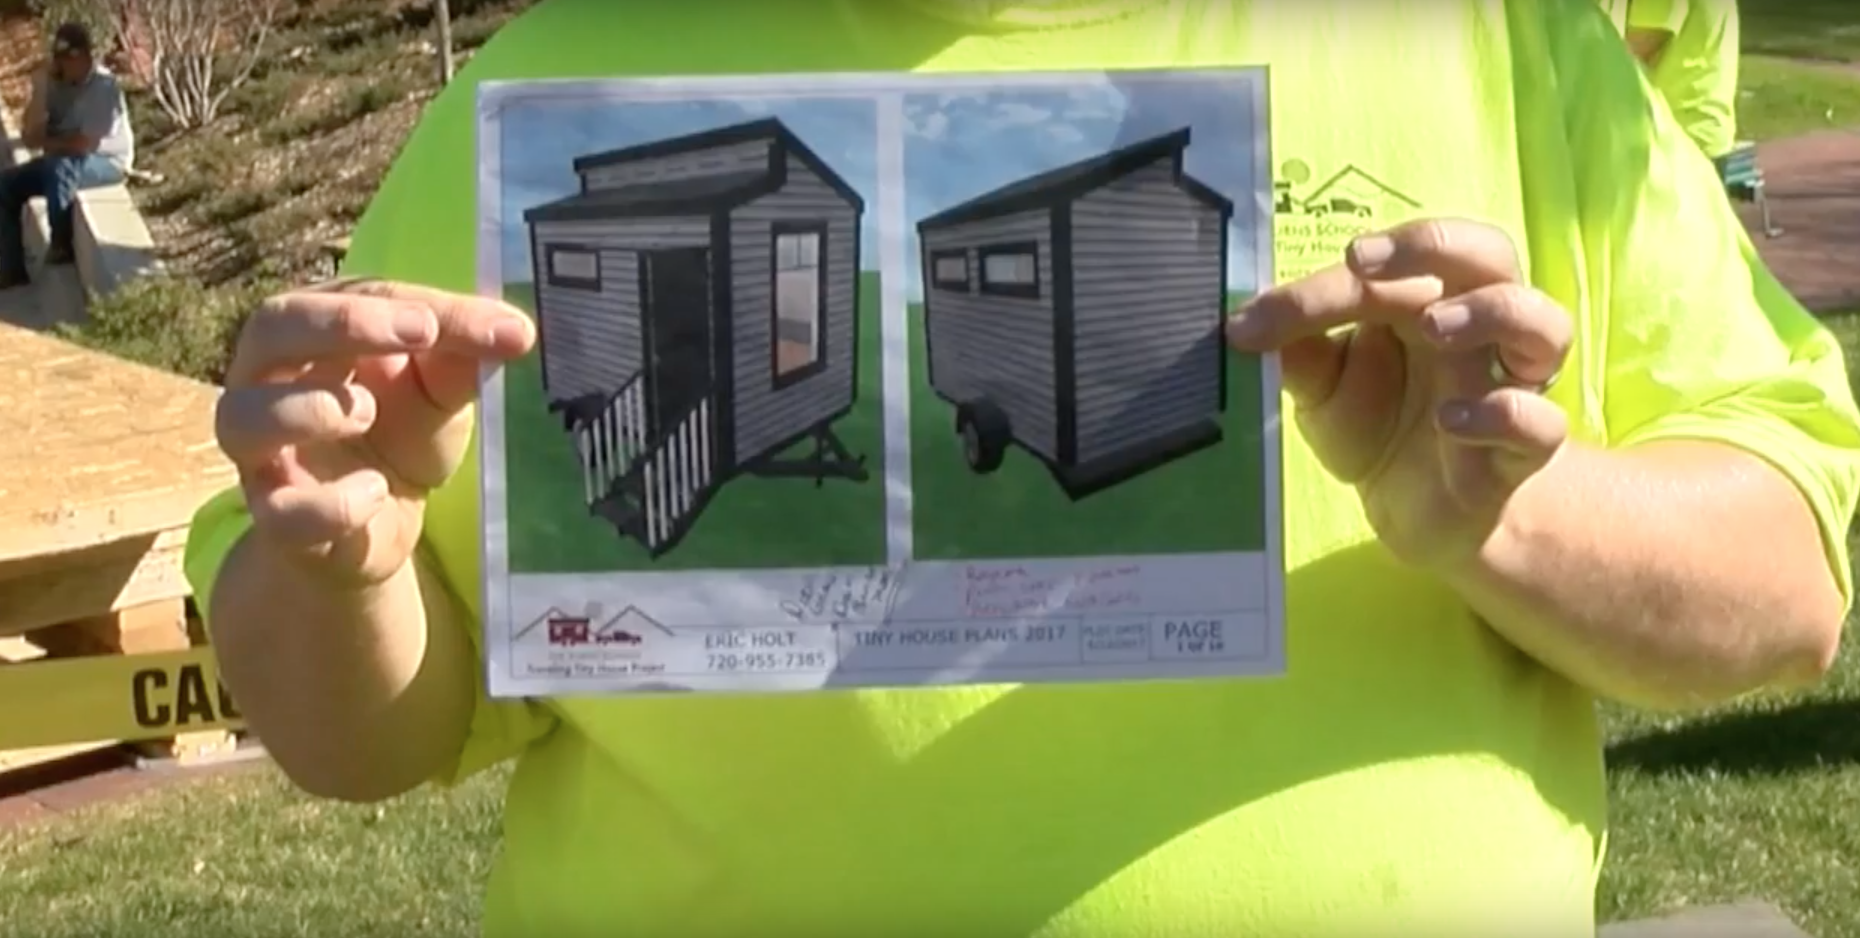 University of Denver Students Speed Build a Tiny House for the Homeless - Plans